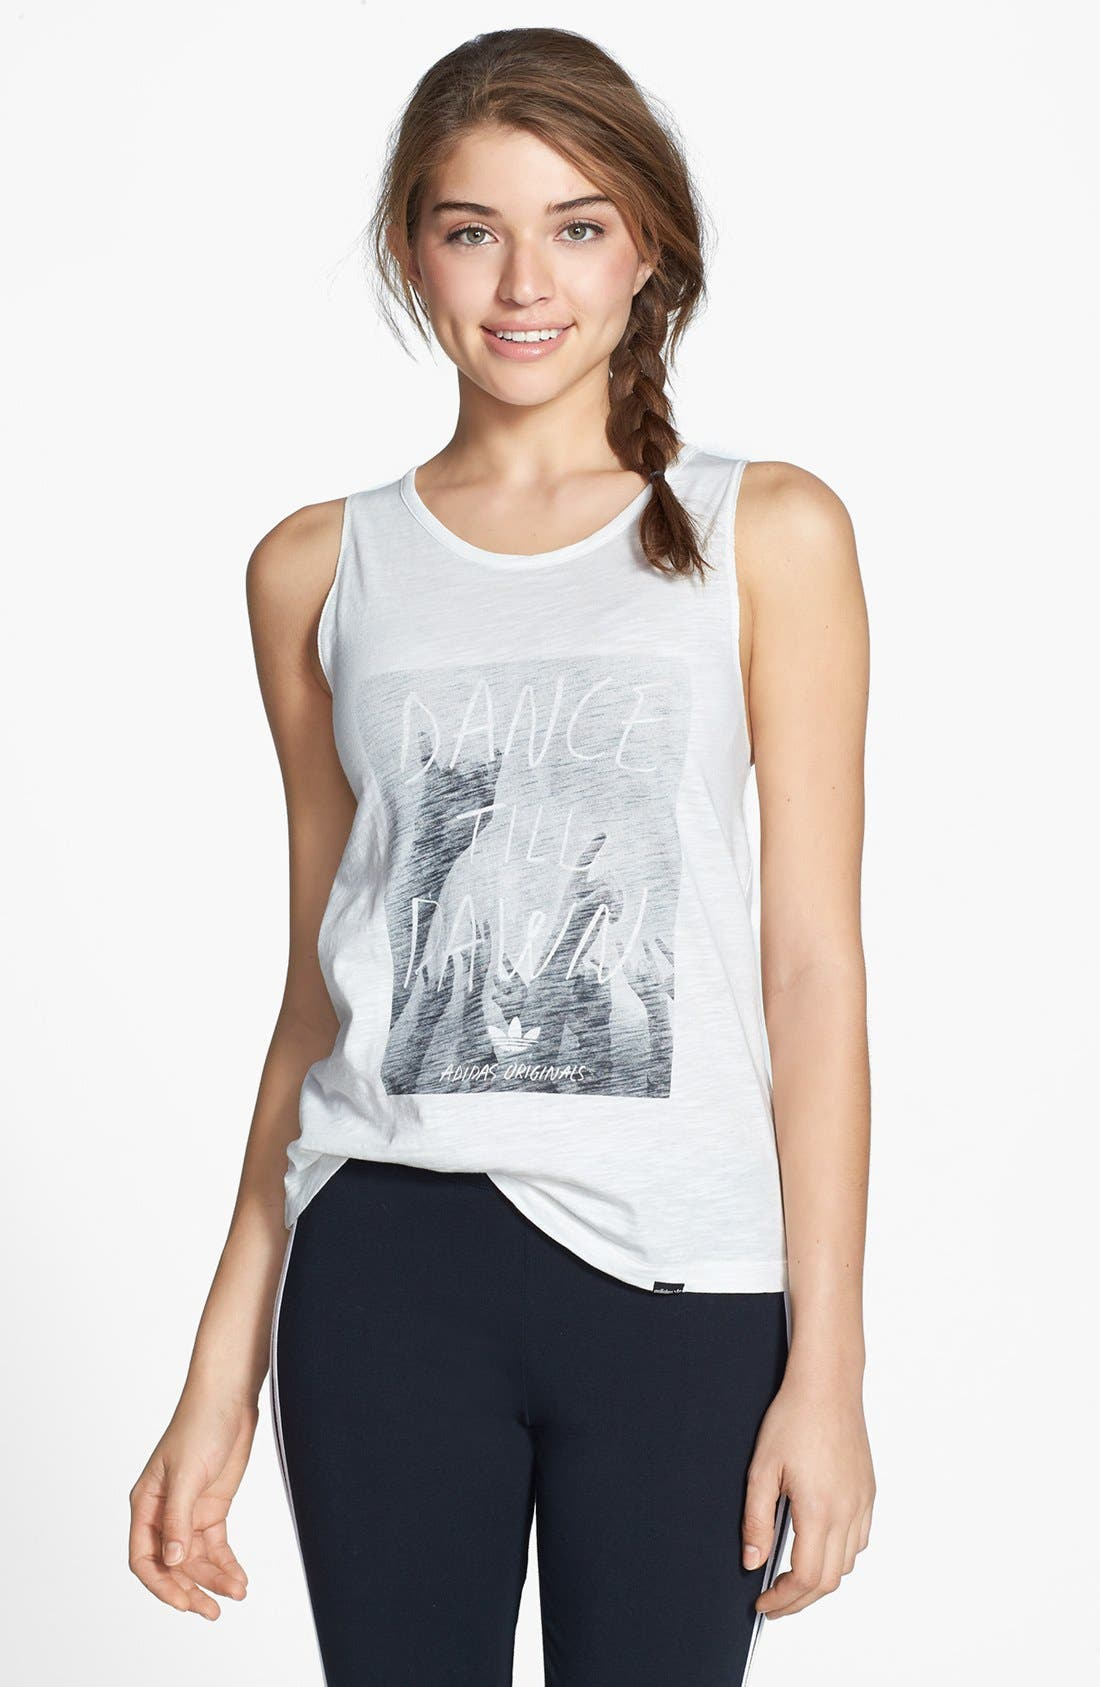 Alternate Image 1 Selected - adidas Originals 'Indie - Dance Till Dawn' Graphic Cutout Tank